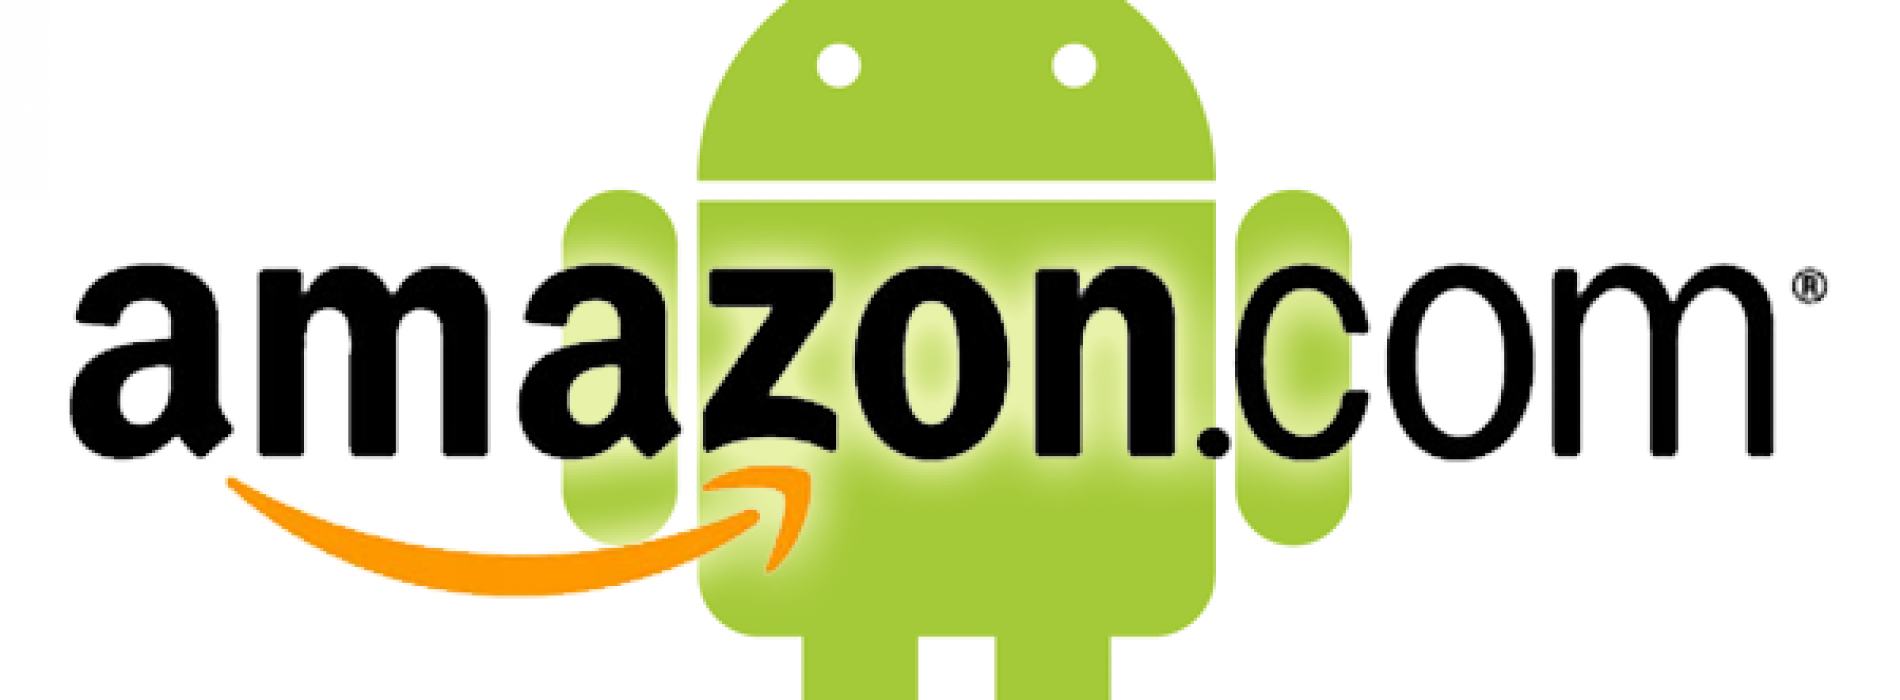 Amazon smartphone reported to feature 4.7-inch display